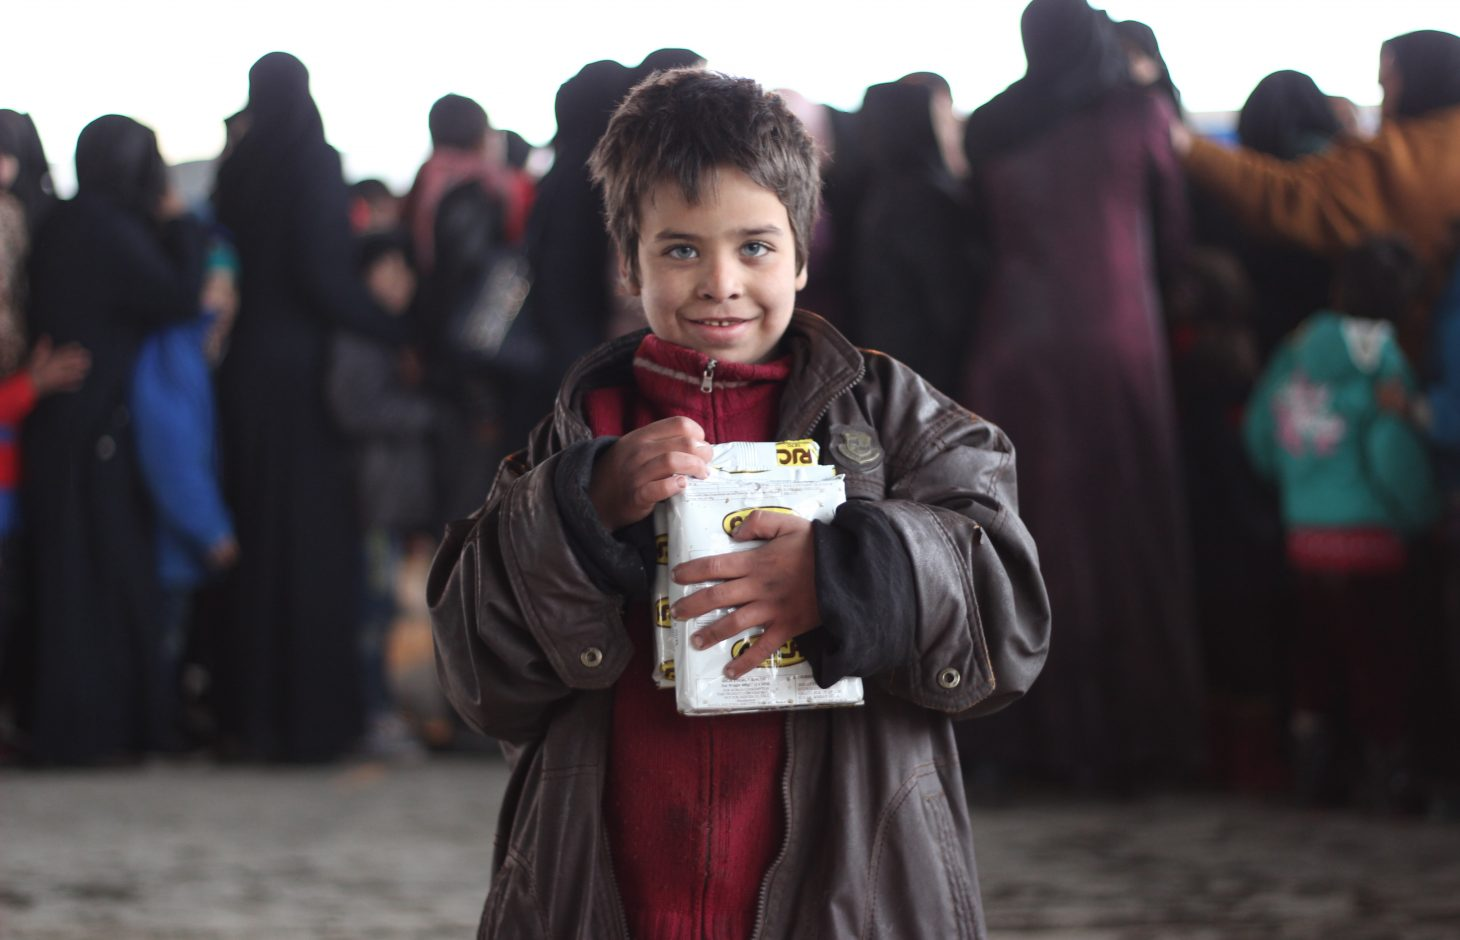 On 7 December 2016, A child holds a box of high-energy biscuits distributed by UNICEF to children in a large warehouse in Jibreen, now used as a shelter for thousands of families who fled violence in east Aleppo. UNICEF is screening children for malnutrition in Jibreen and nutritional supplements for children who have survived for weeks and months with just the bare minimum of food.Some 31,5000 people are reported to have been displaced from and within eastern Aleppo City since 24 November. Temperatures are dropping quickly and heavy rainfall has made conditions even worse over the past few days. UNICEF is providing blankets and winter clothing, as well as access to safe water, essential medical care, including vaccinations and psychosocial support for children who have lived through such horrors.In Jibreen, to the east of Aleppo City, children and their families displaced by recent fighting in eastern Aleppo take shelter in a large warehouse in an area under Government control. Some 8,000 people are sheltering there.In Hanano, in east Aleppo City was the first district to be retaken by Government forces on 27 November. People are now moving back to the area as the frontline of fighting has moved further away. This includes families returning to their homes, as well as displaced families from other areas of east Aleppo.